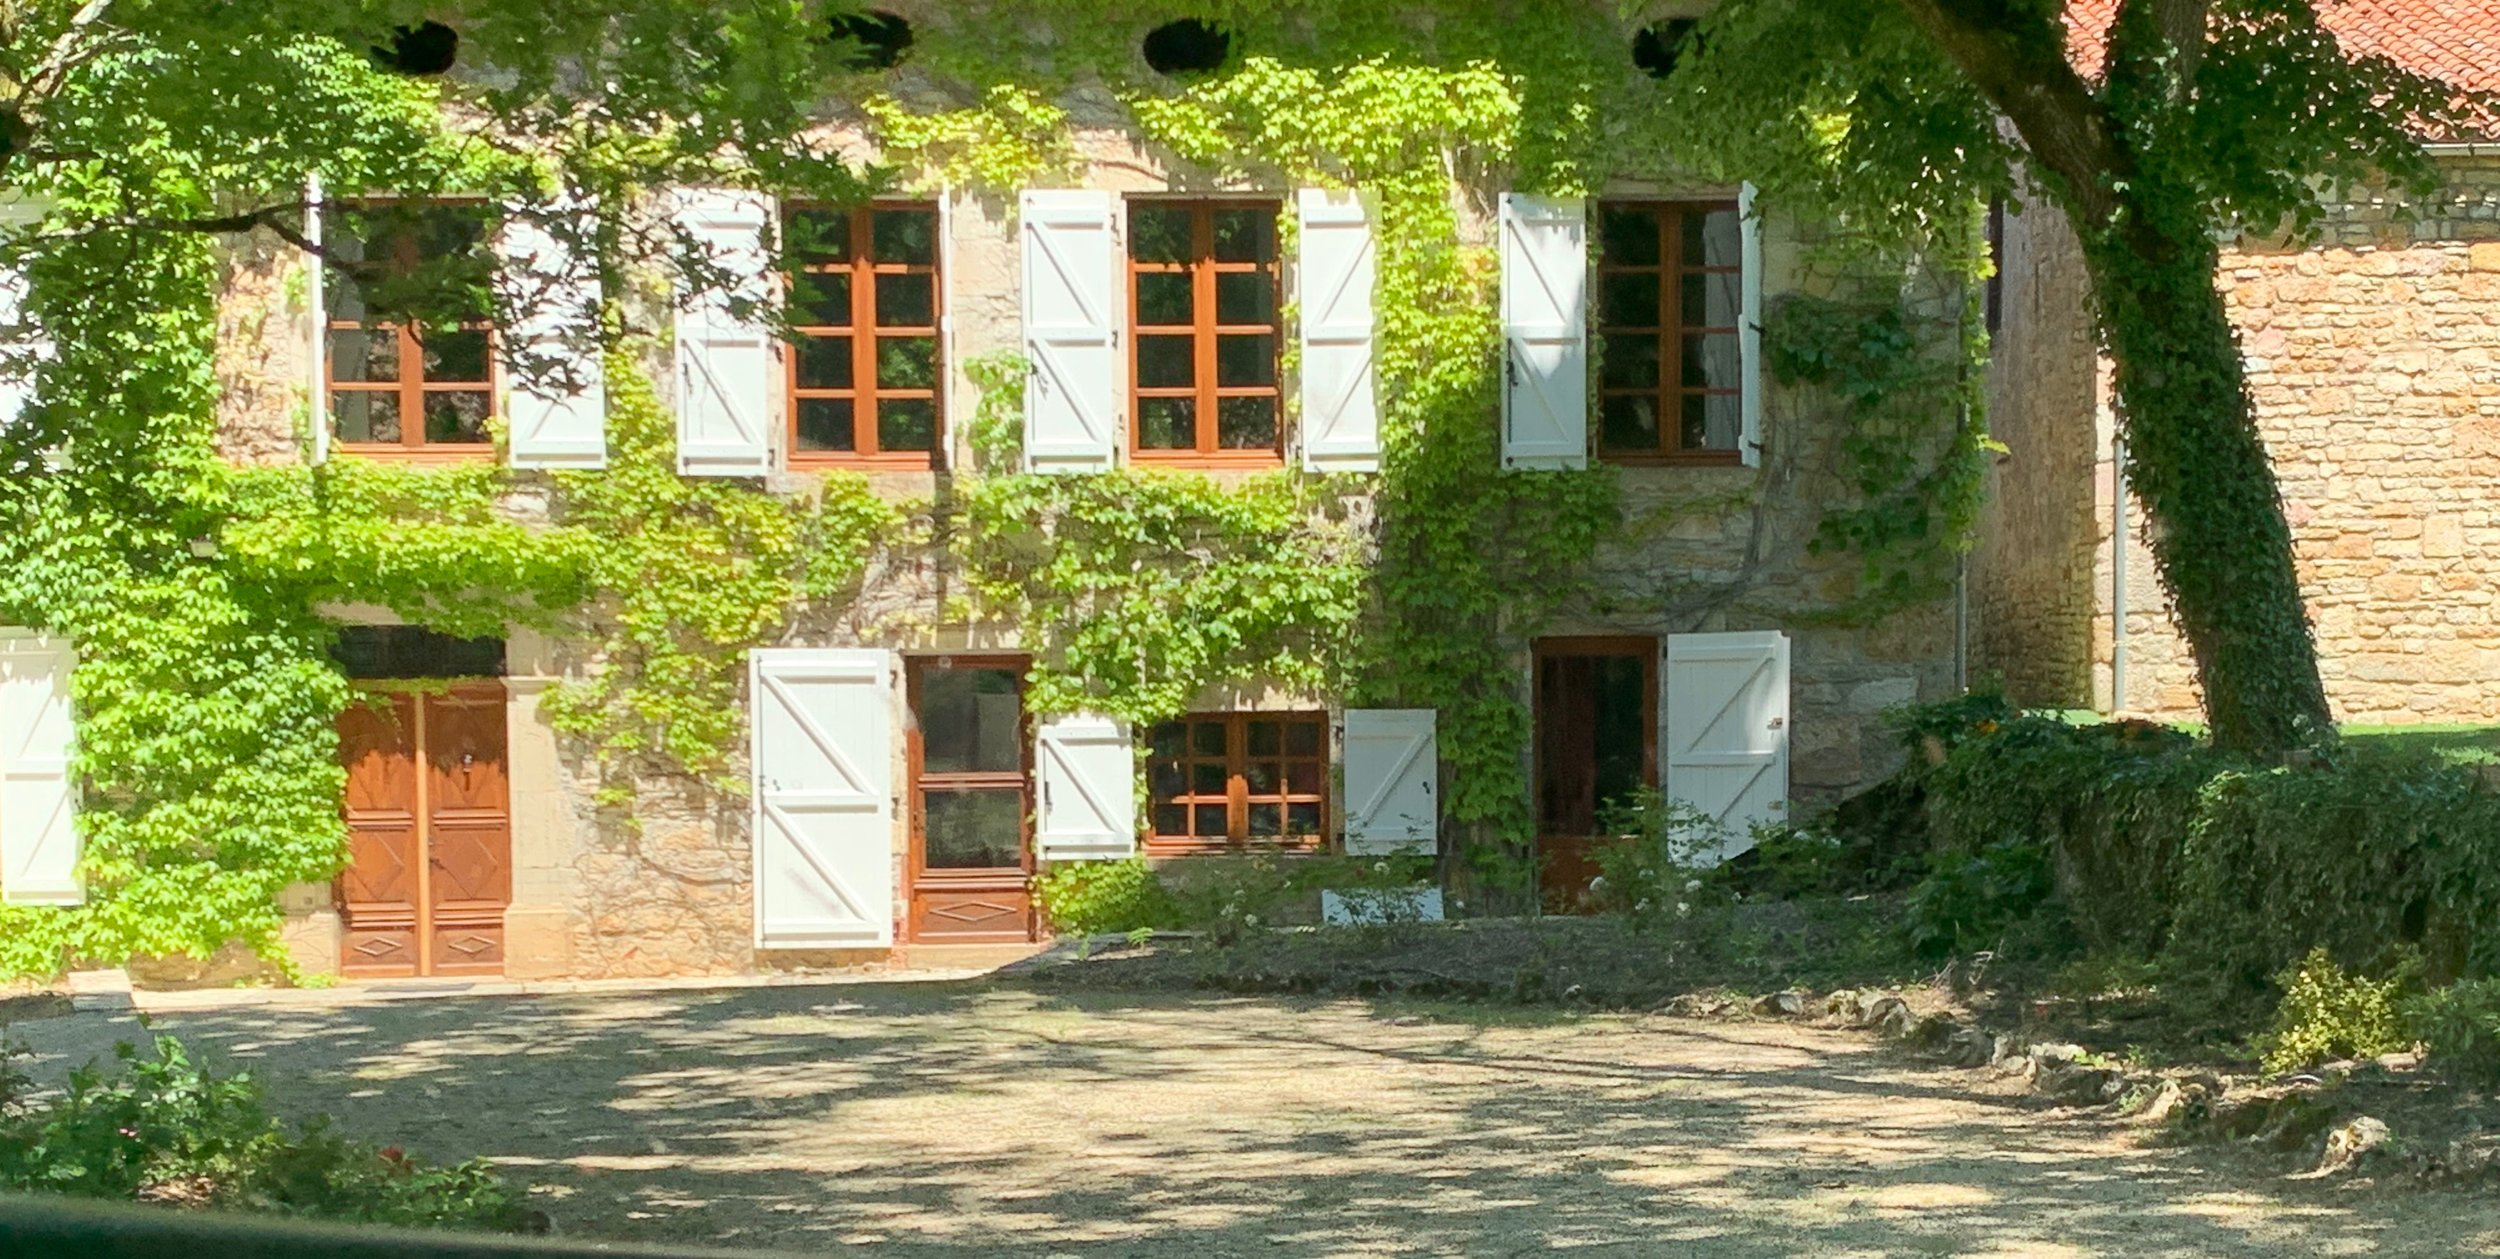 Our home away from home in Calvignac, France. A wonderful place for artists!